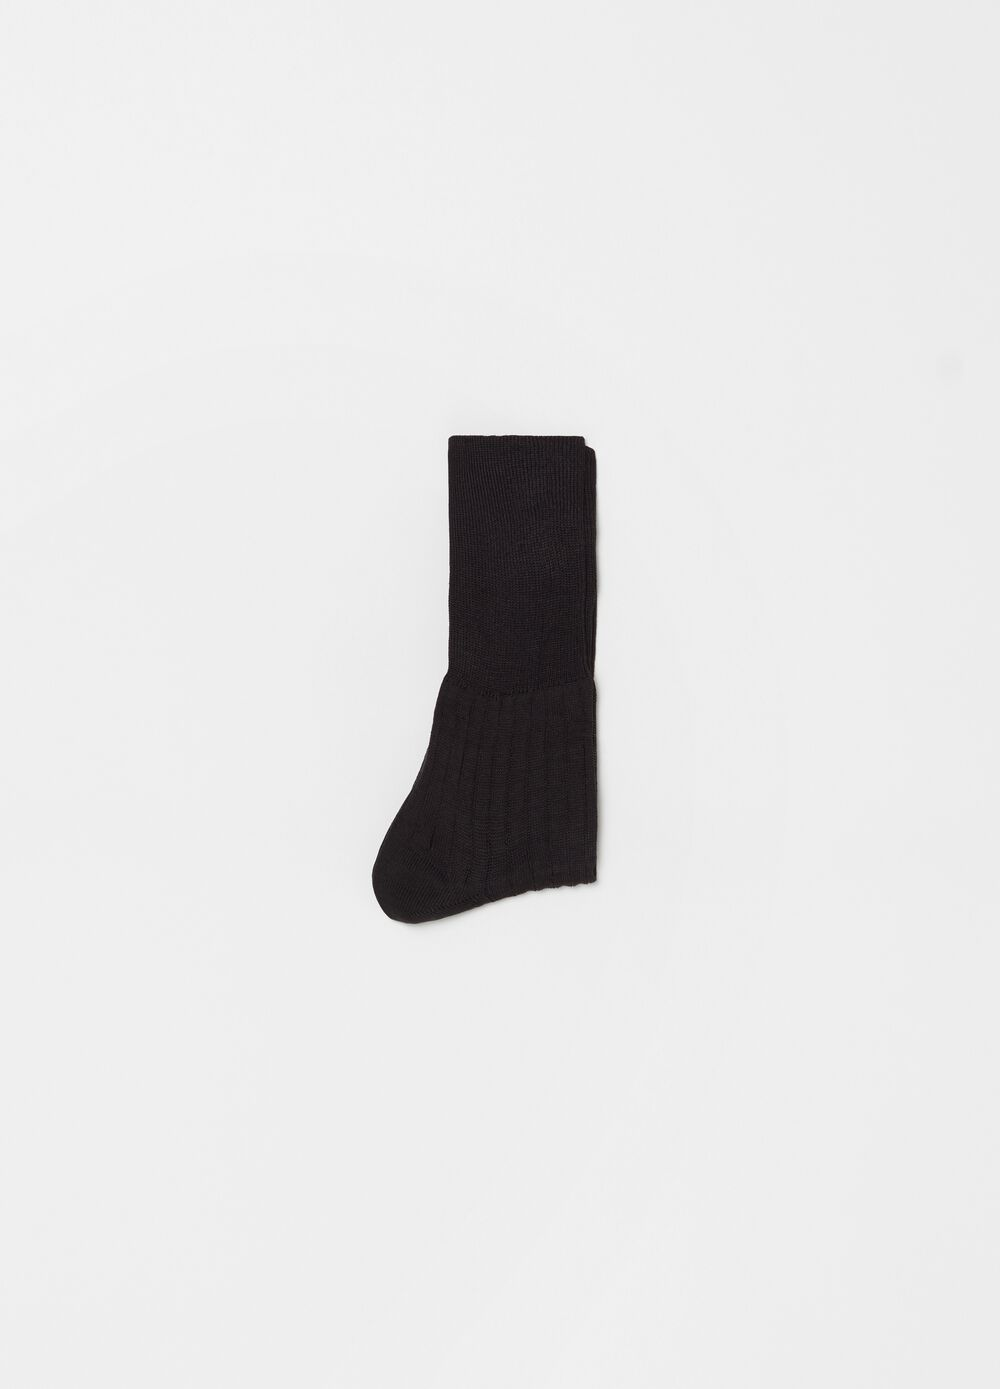 100% cotton ribbed short medical socks